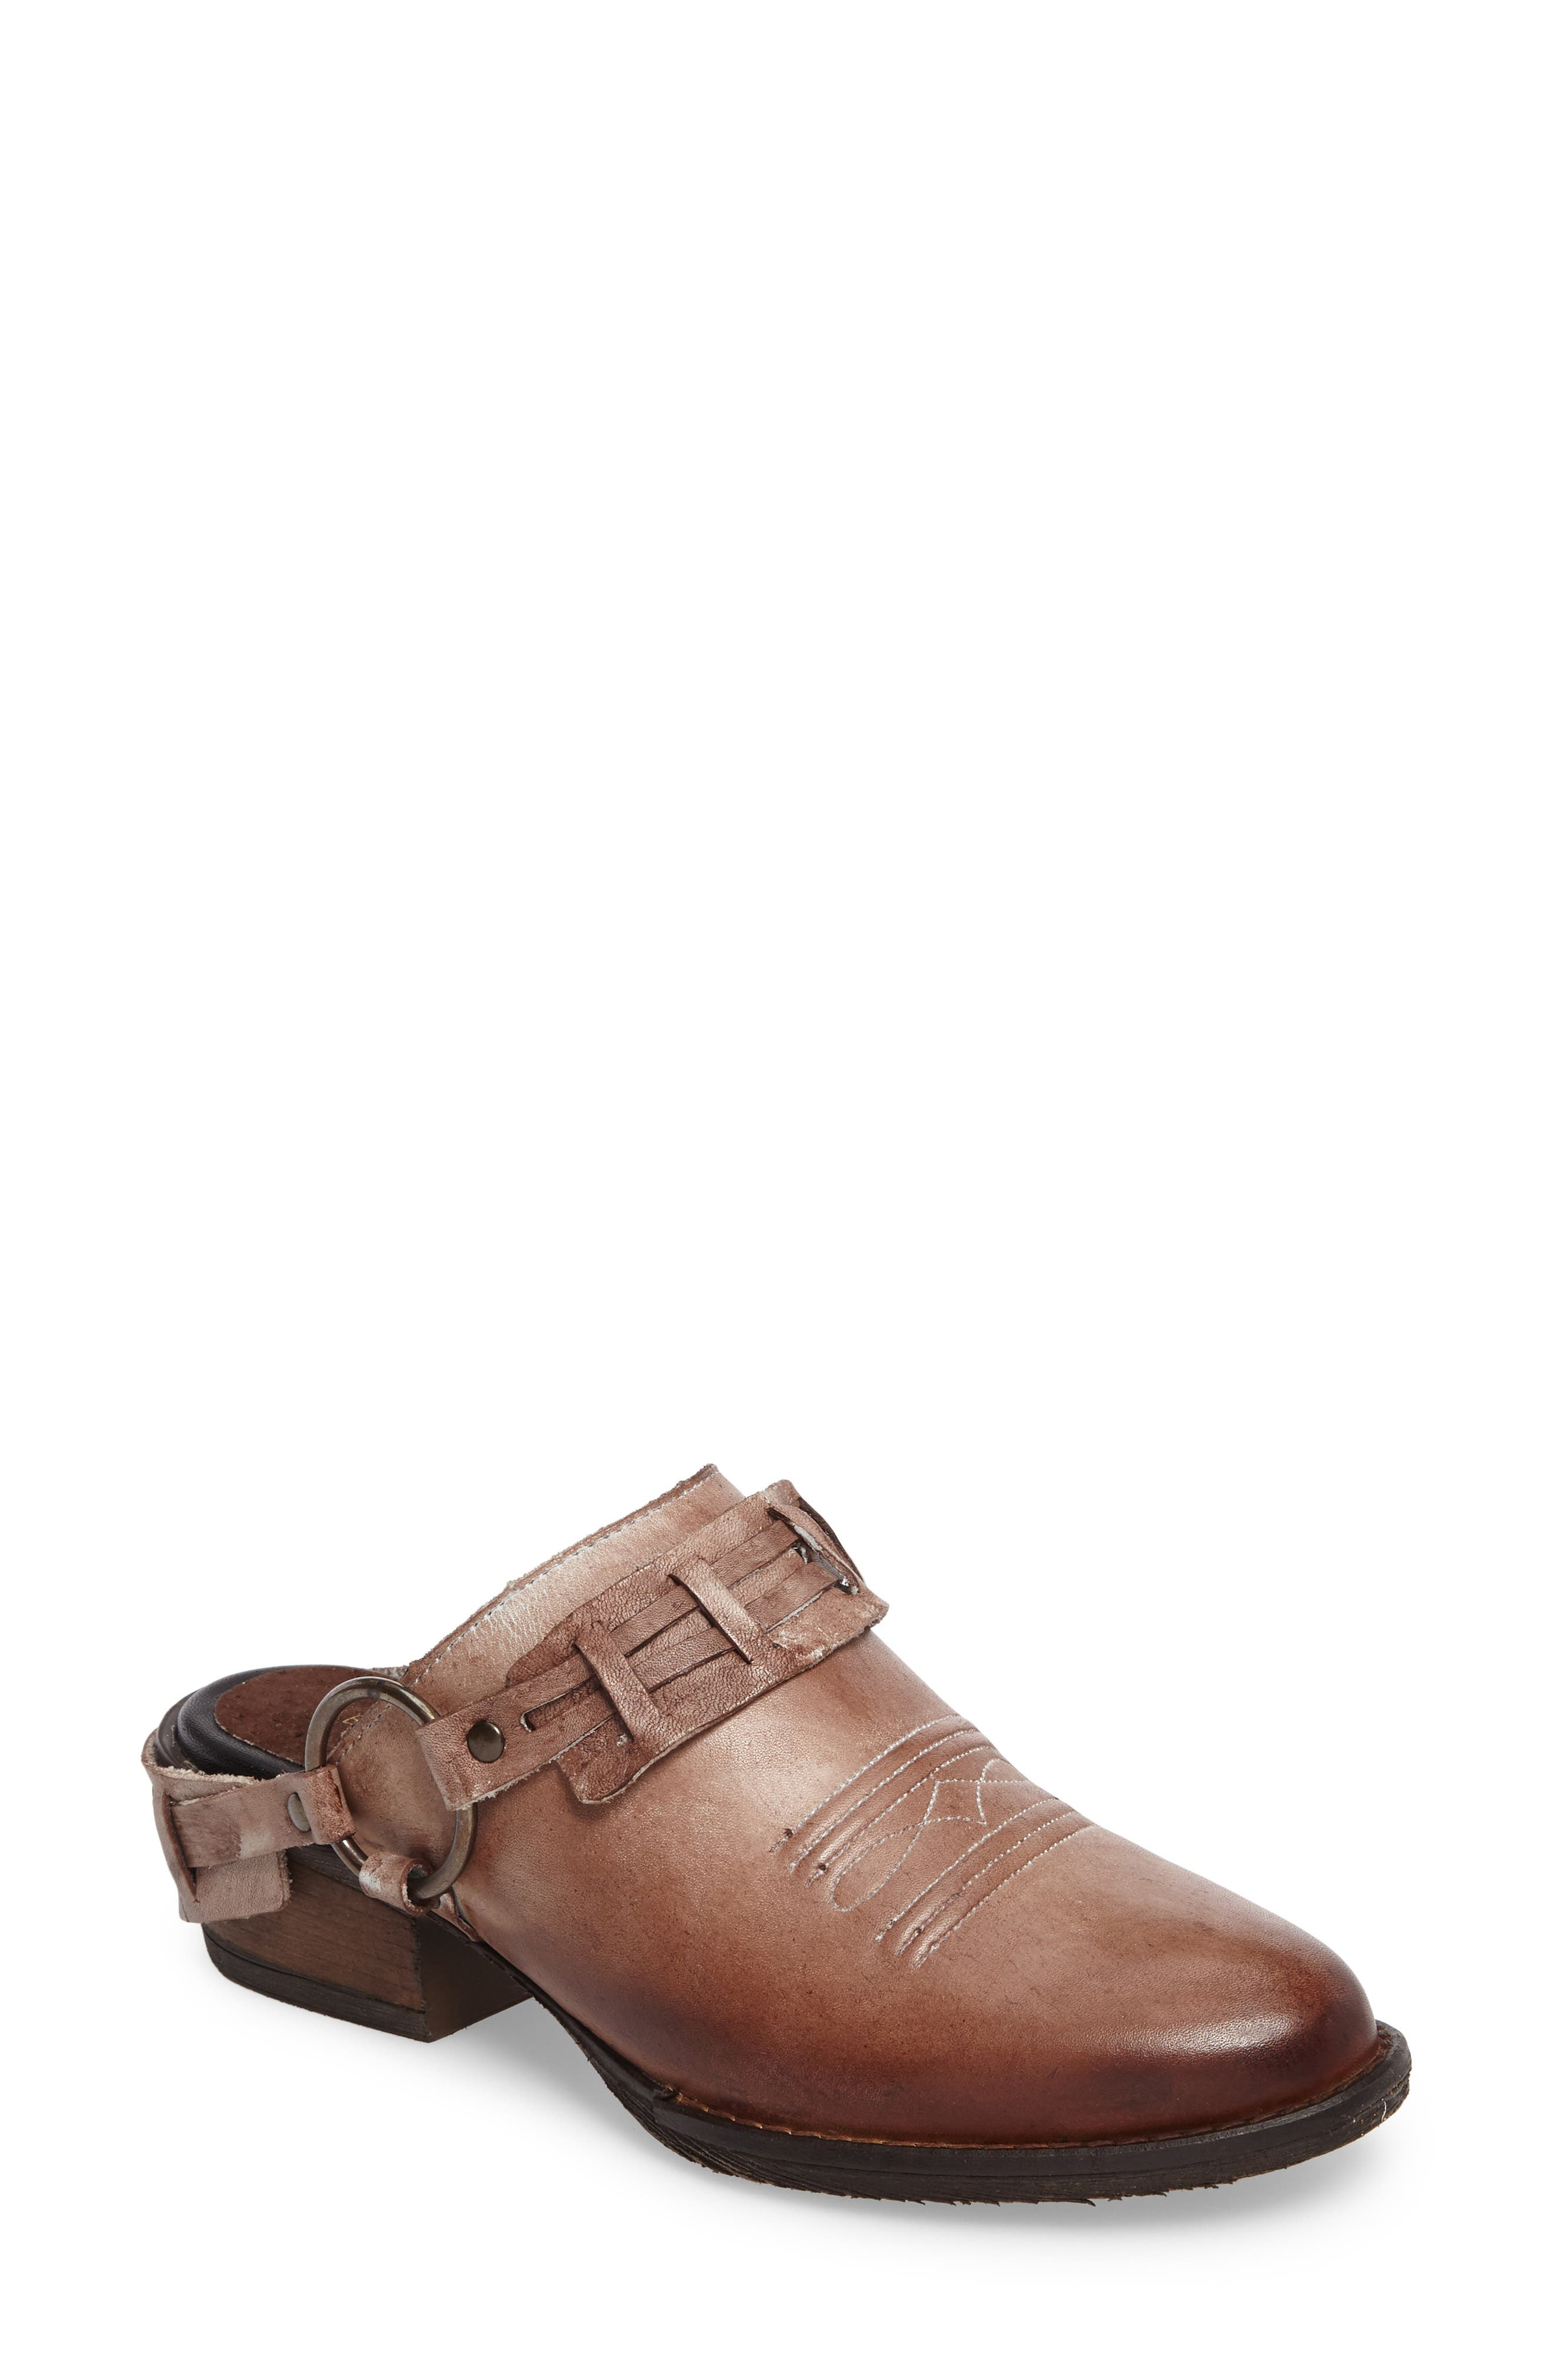 Eriko Western Harness Mule,                         Main,                         color, Brown